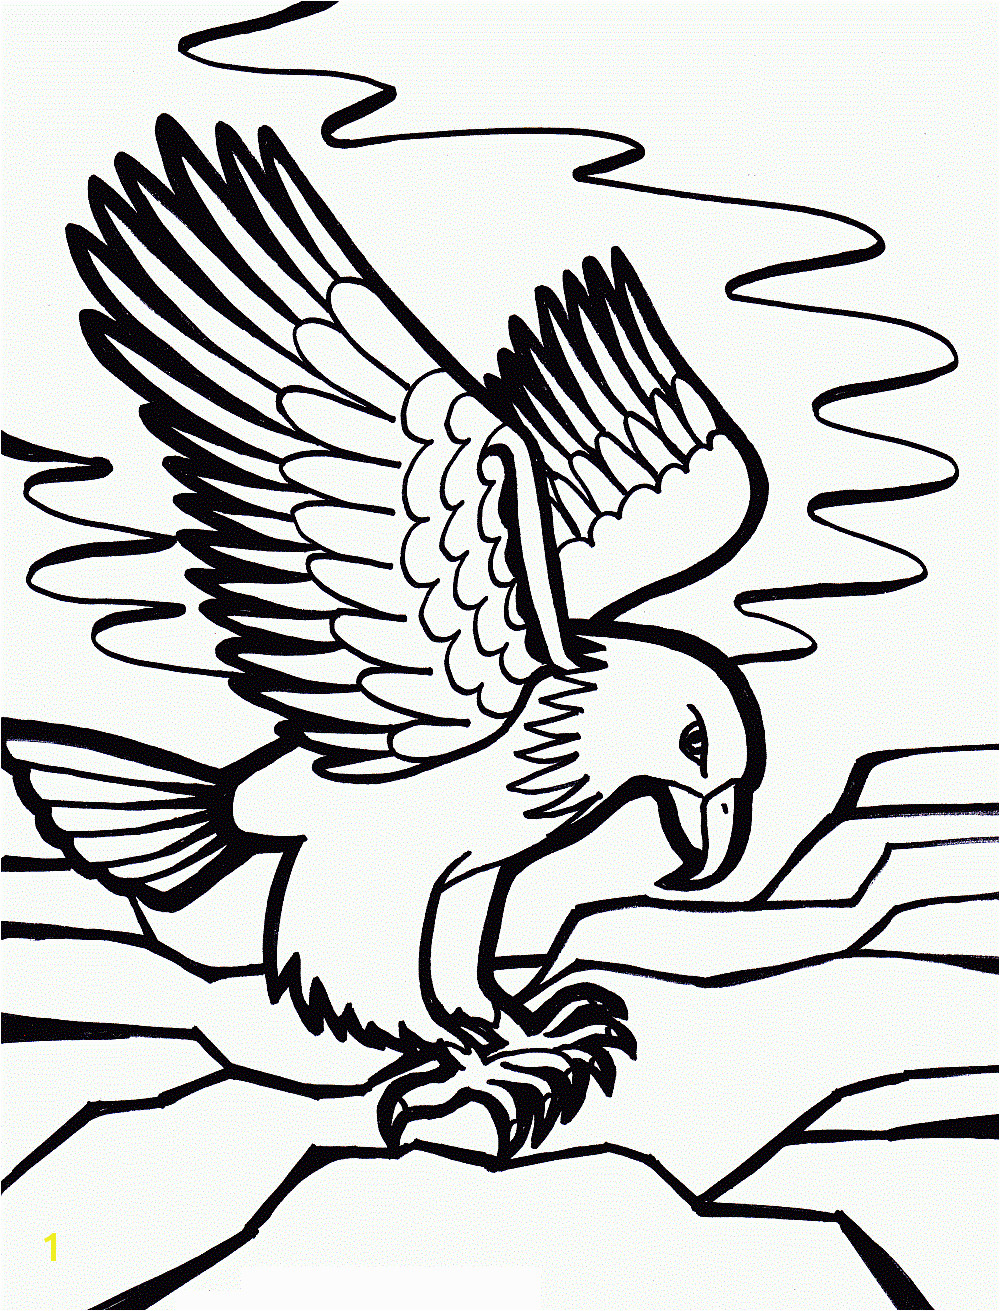 free printable eagle image for shirt